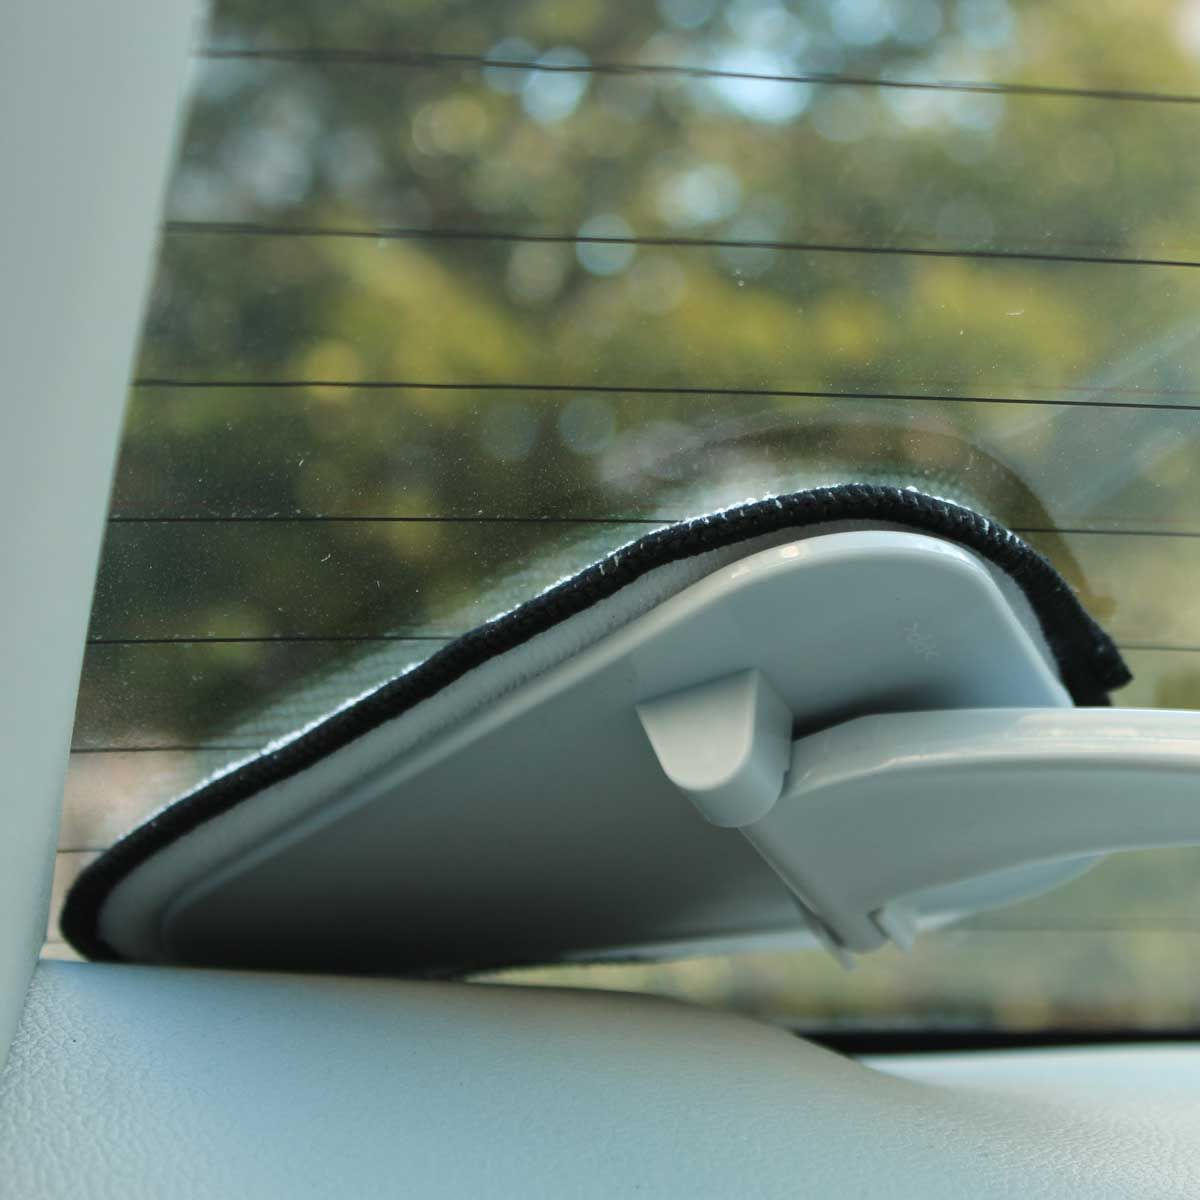 New Today How to Clean Inside Car Windows